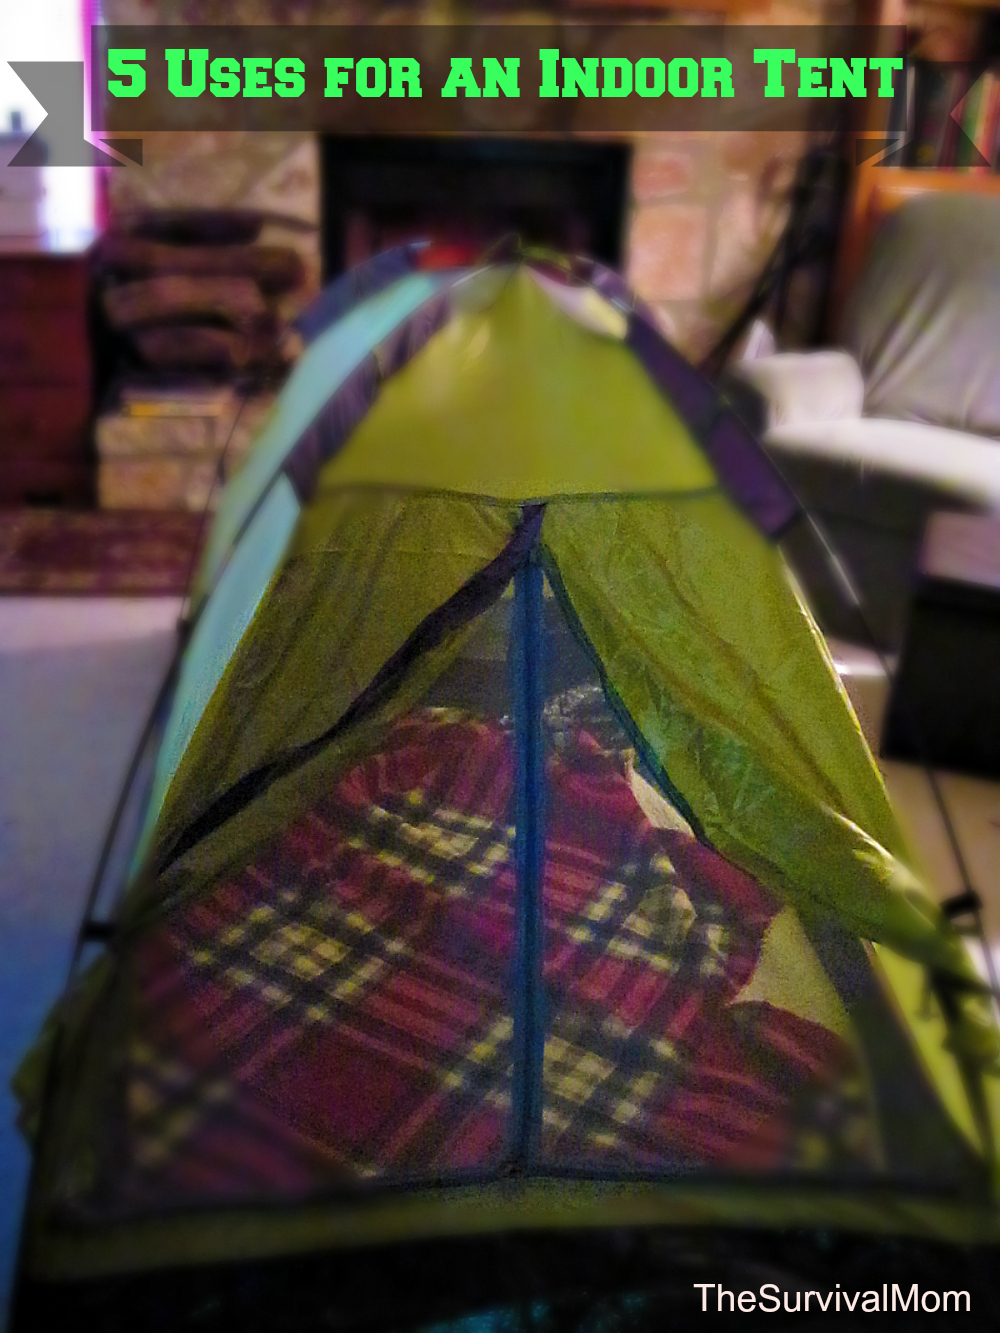 DOMETENTHelenCates & 5 Uses for an Indoor Tent - Survival Mom